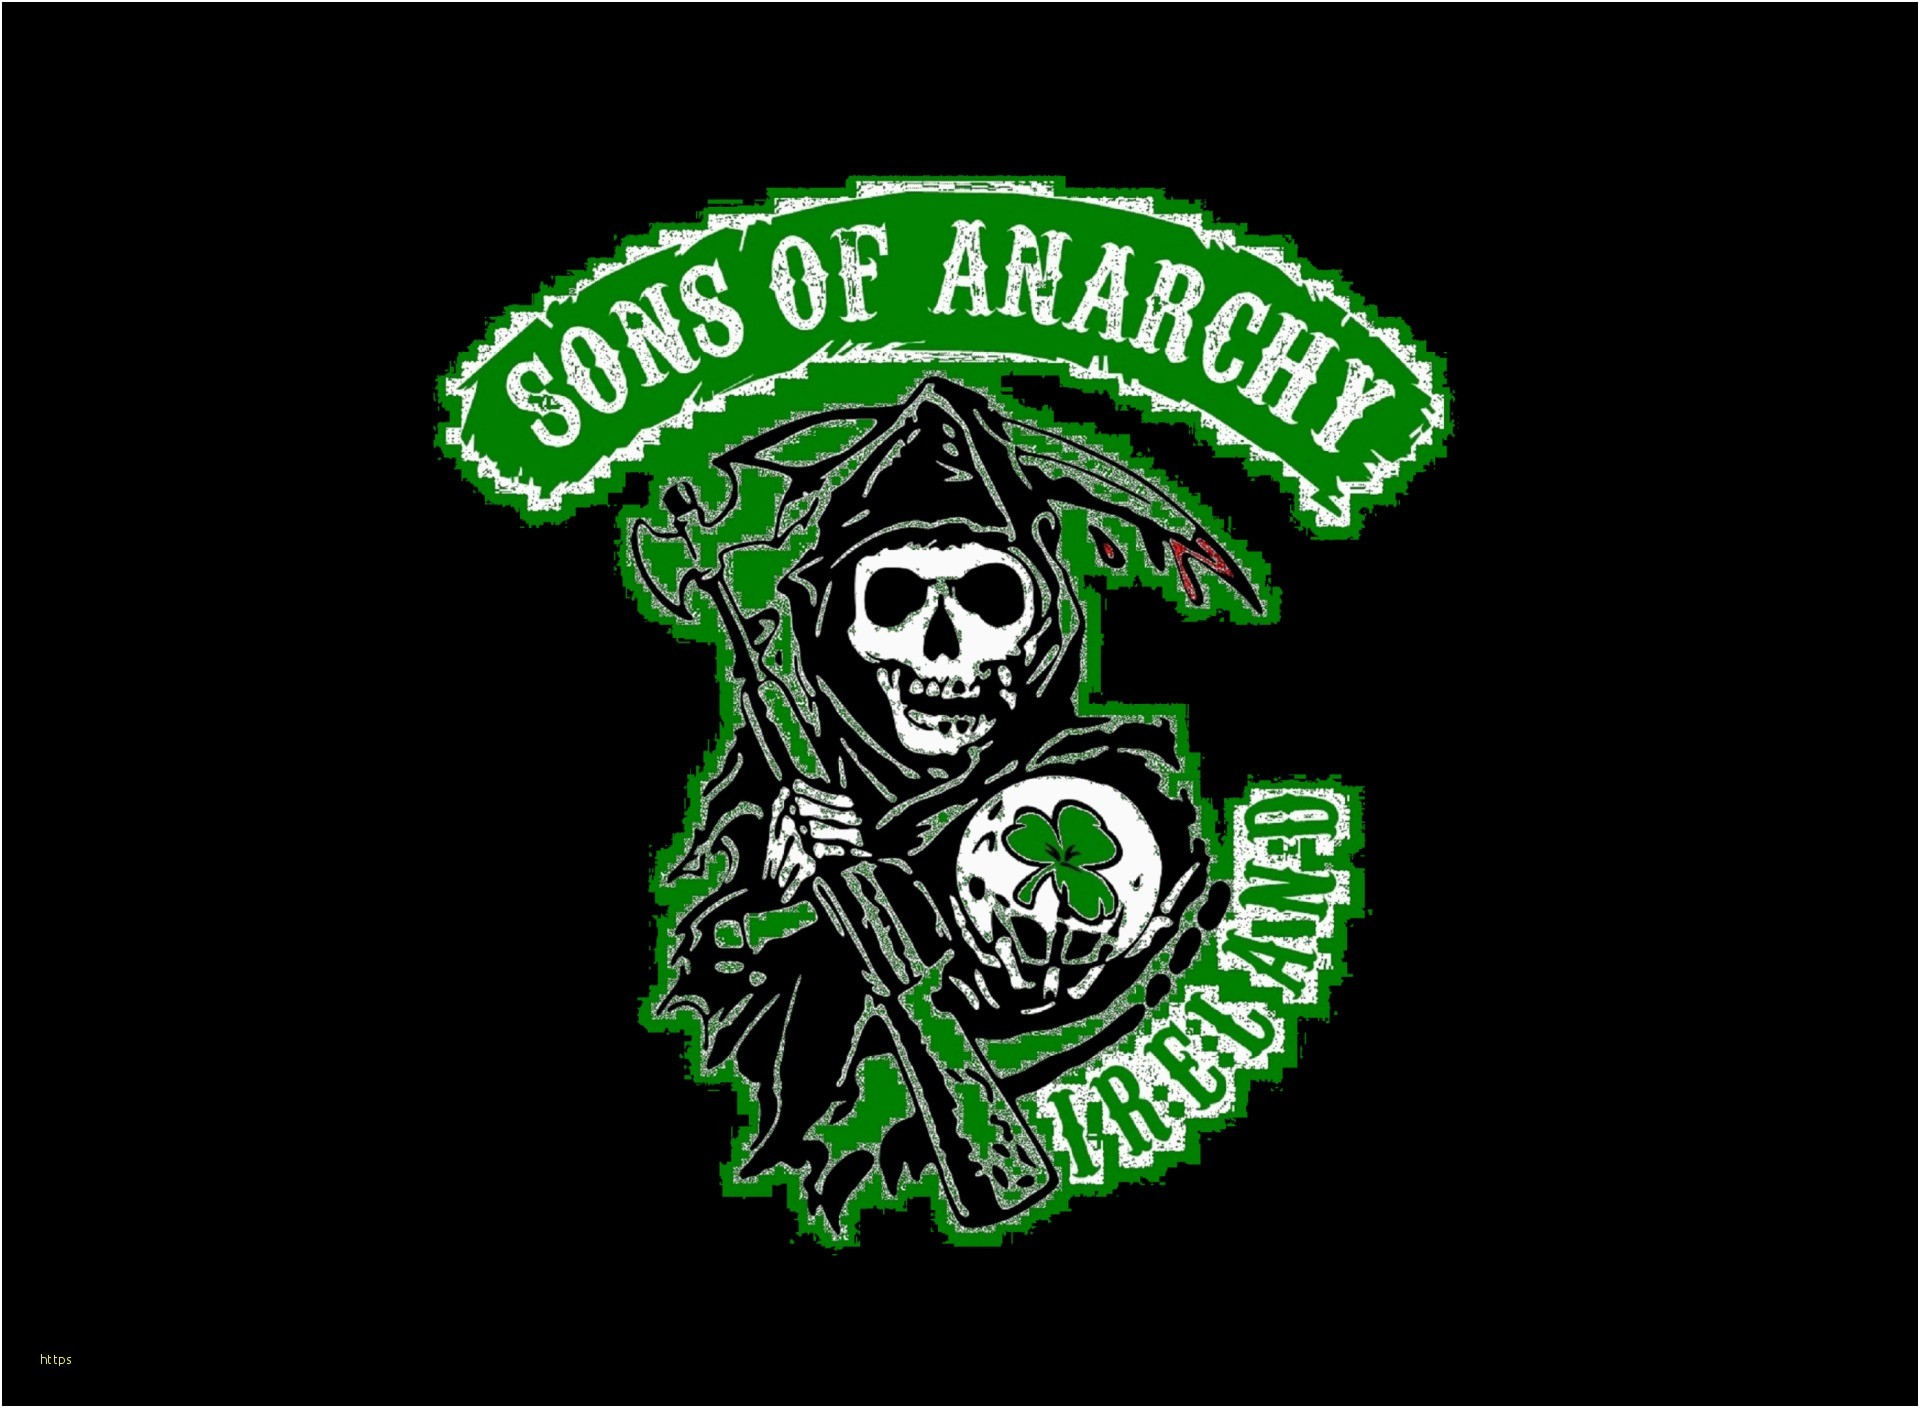 1920x1408 Sons Of Anarchy Wallpaper Elegant sons Of Anarchy Mobile Wallpaper  Wallpapersafari